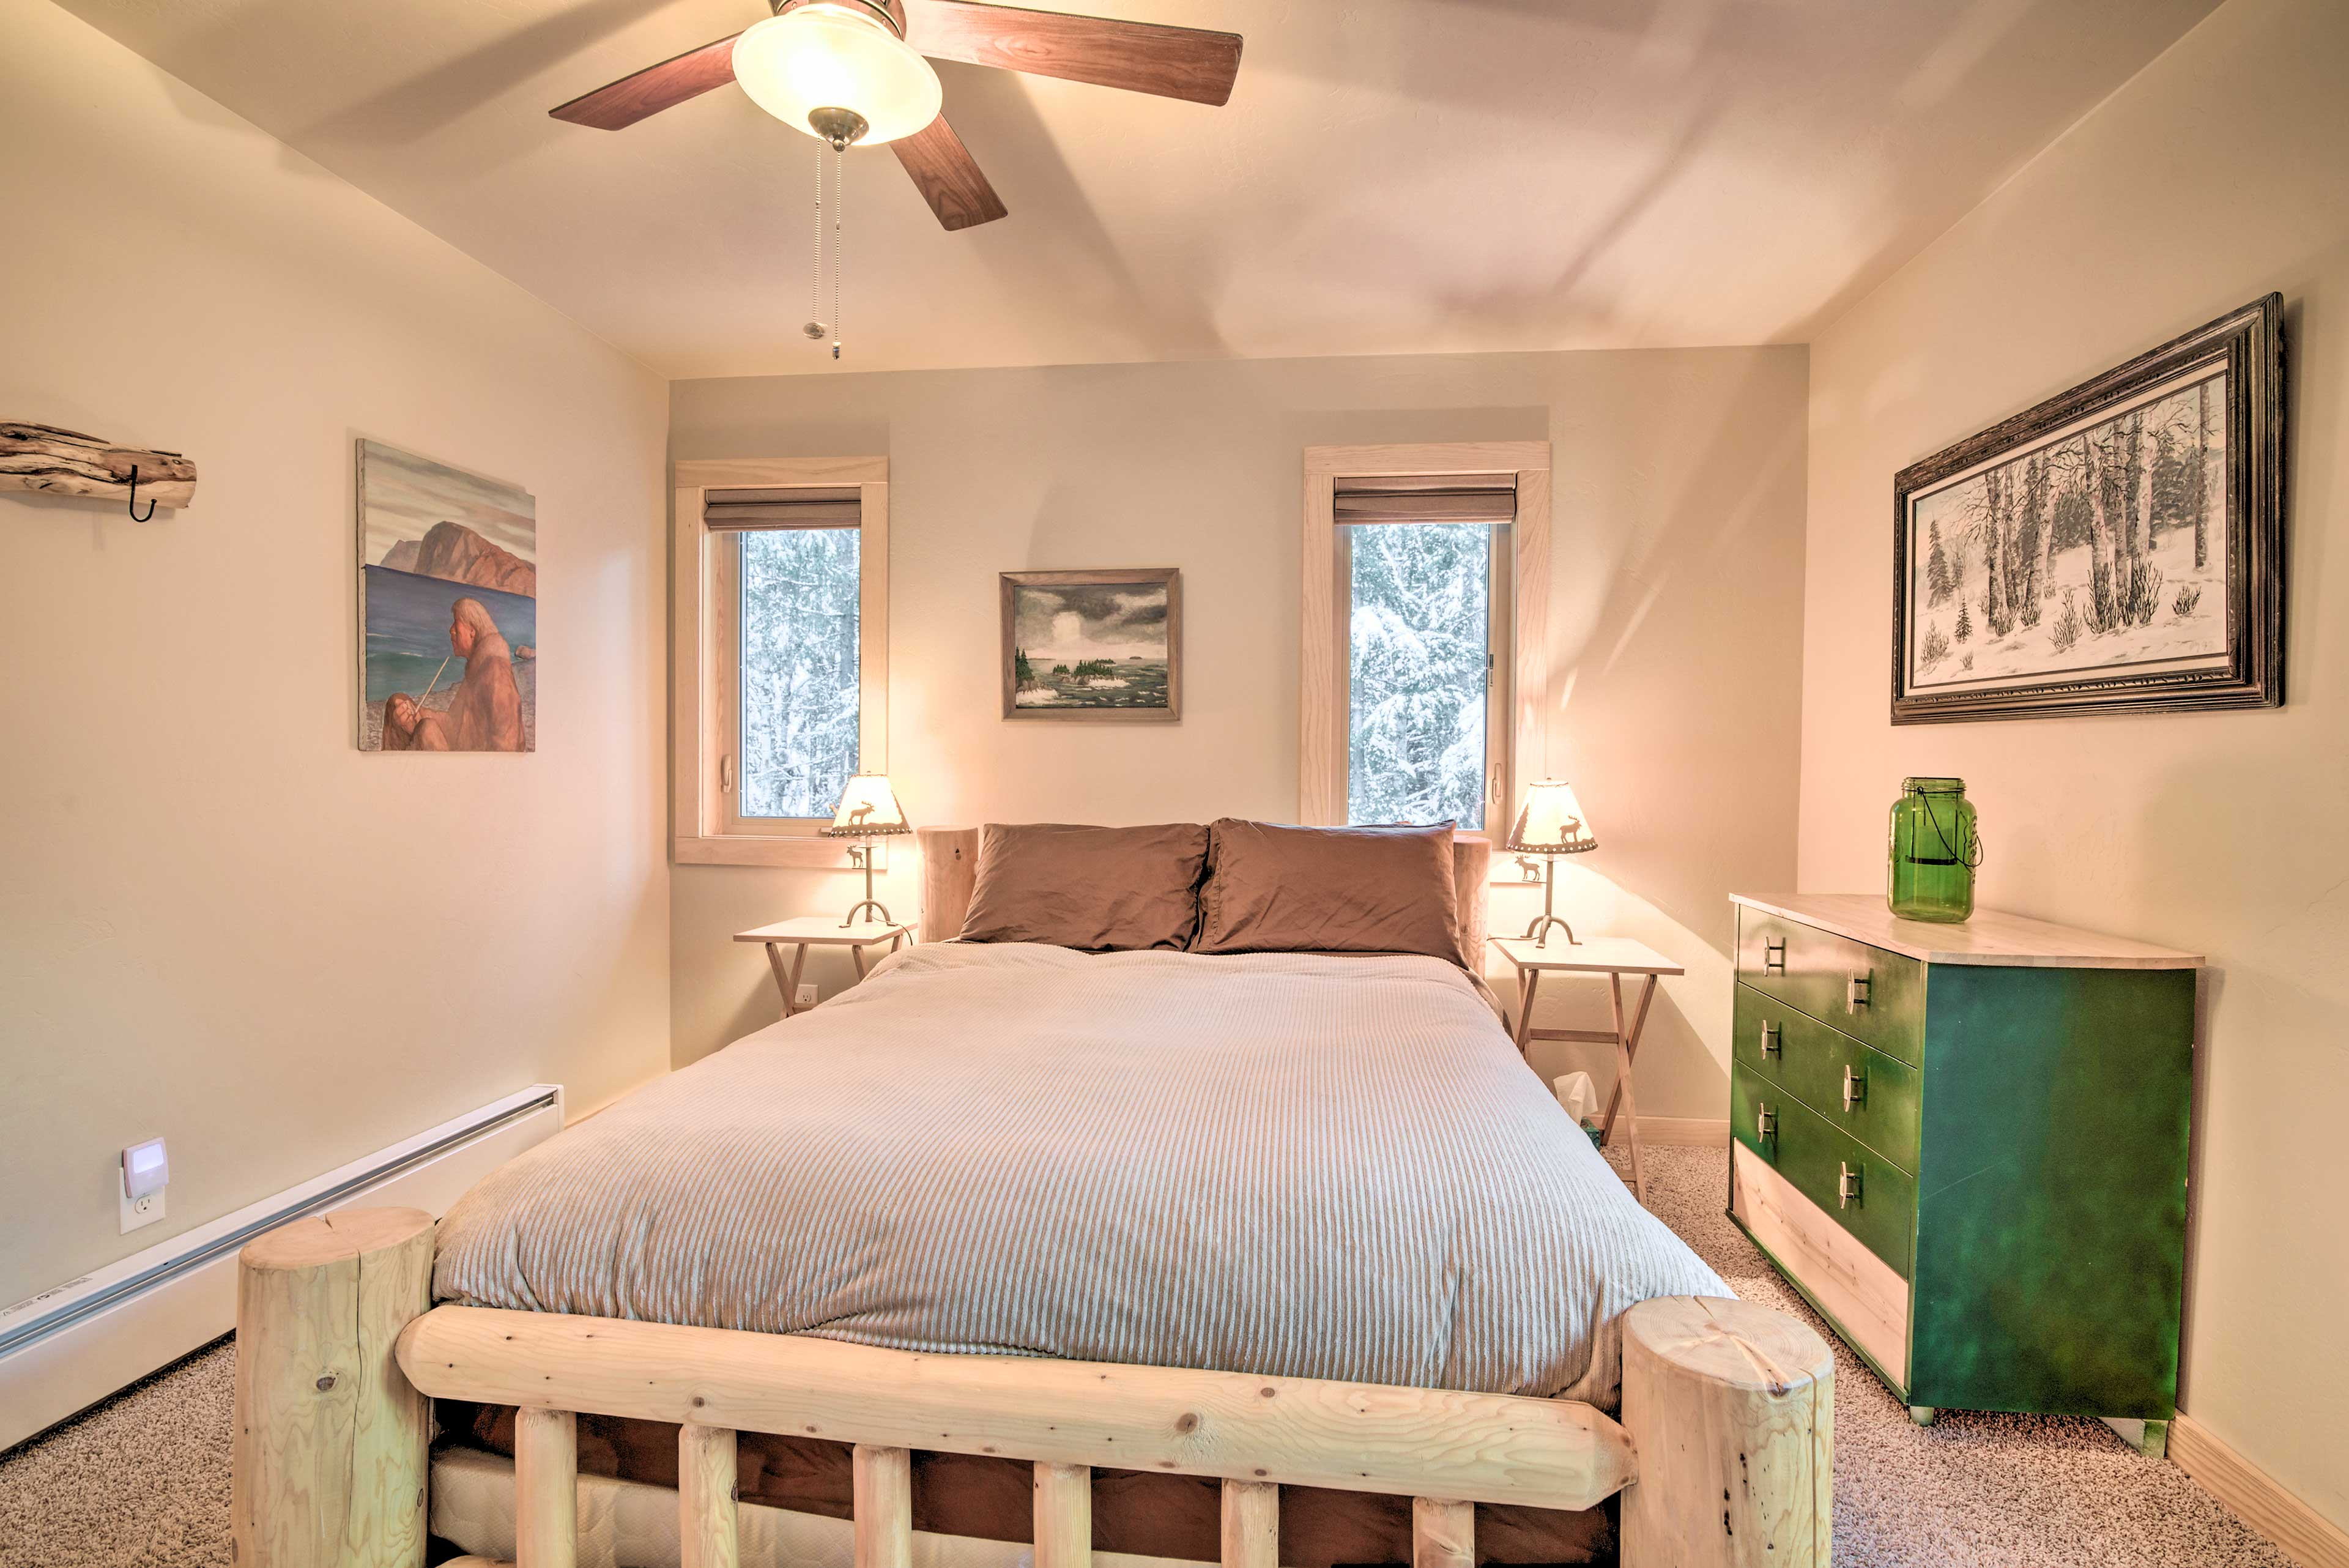 Retreat to the master bedroom for a peaceful slumber in the queen bed.